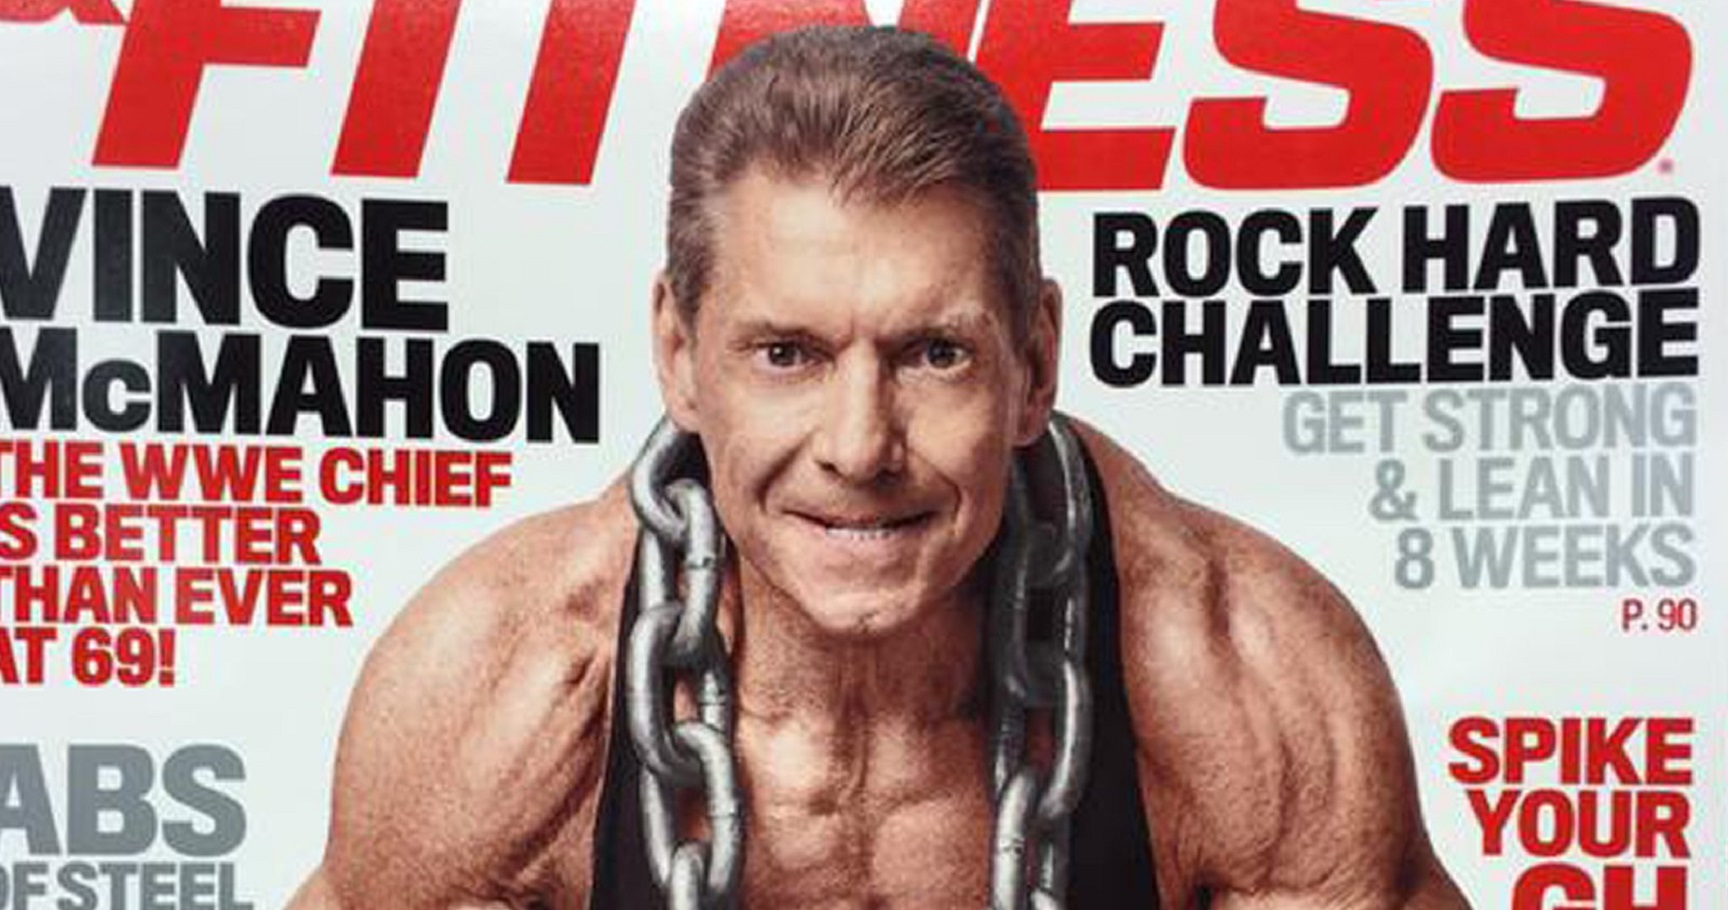 wrestling the brilliance of vince mcmahon How wrestling king vince mcmahon fought to the top from the trailer park to the wrestling ring — the billionaire promoter has led a fascinating life he's taken chair shots to the face, stomped over his enemies (literally and figuratively) and built a professional wrestling empire.